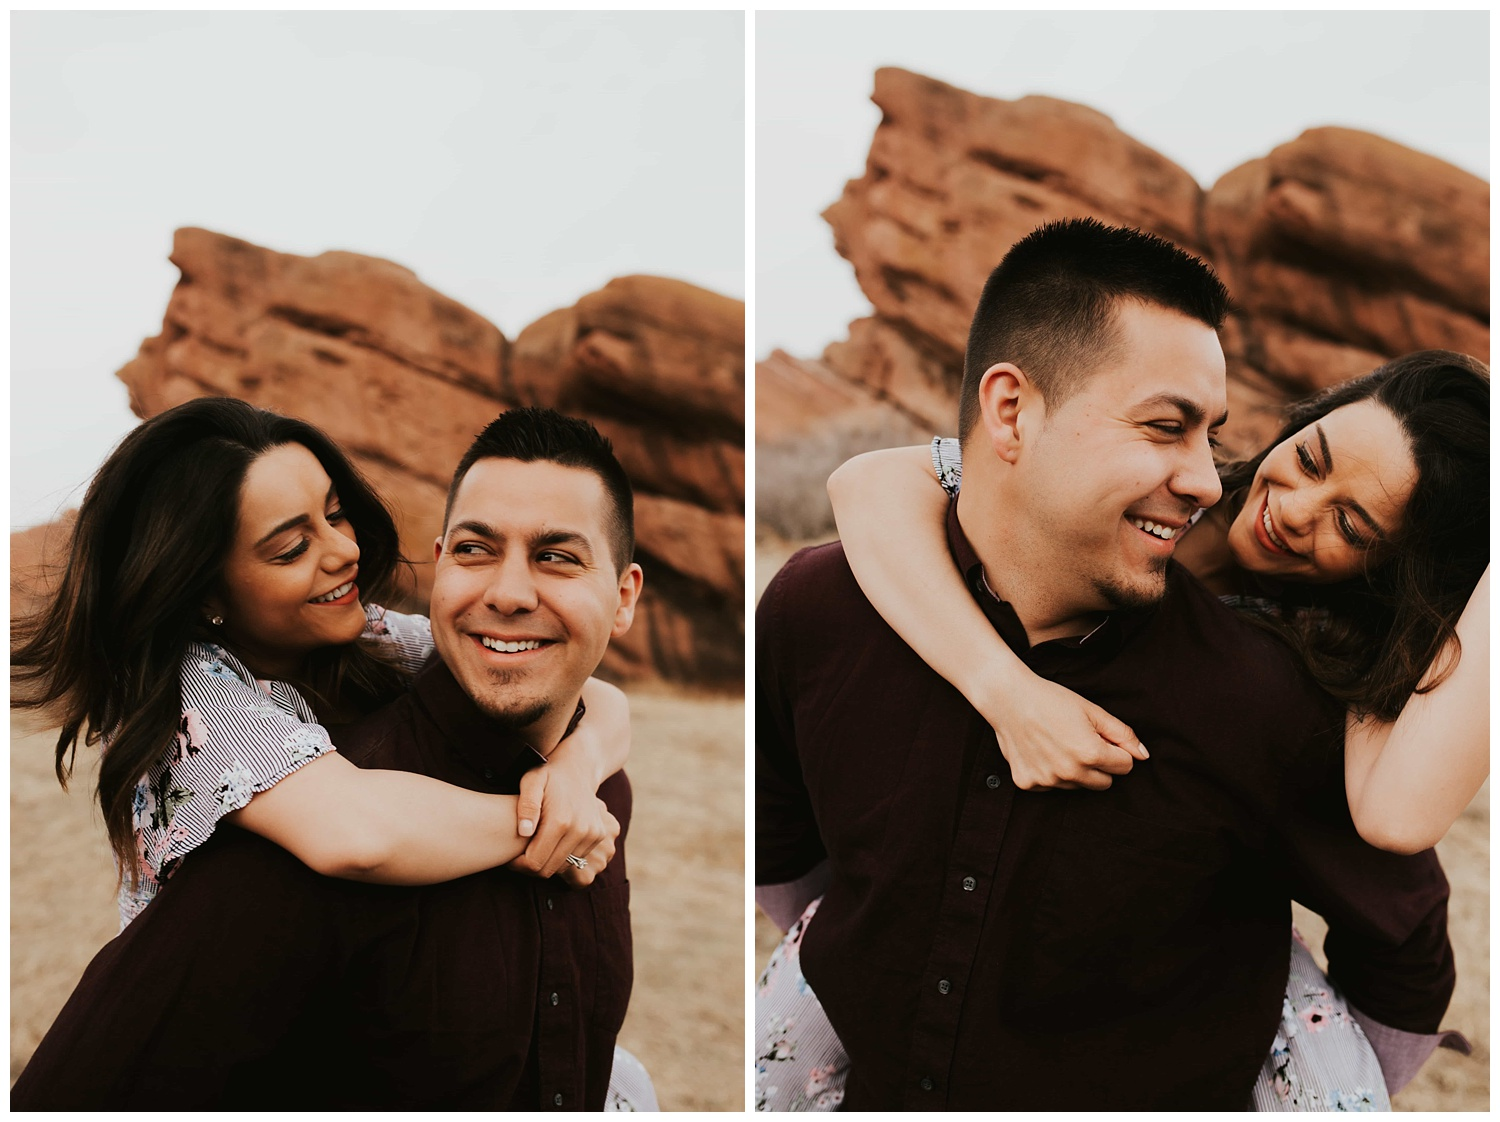 Meredith_Soy_Photography_Red_Rocks_Photographer_0015.jpg